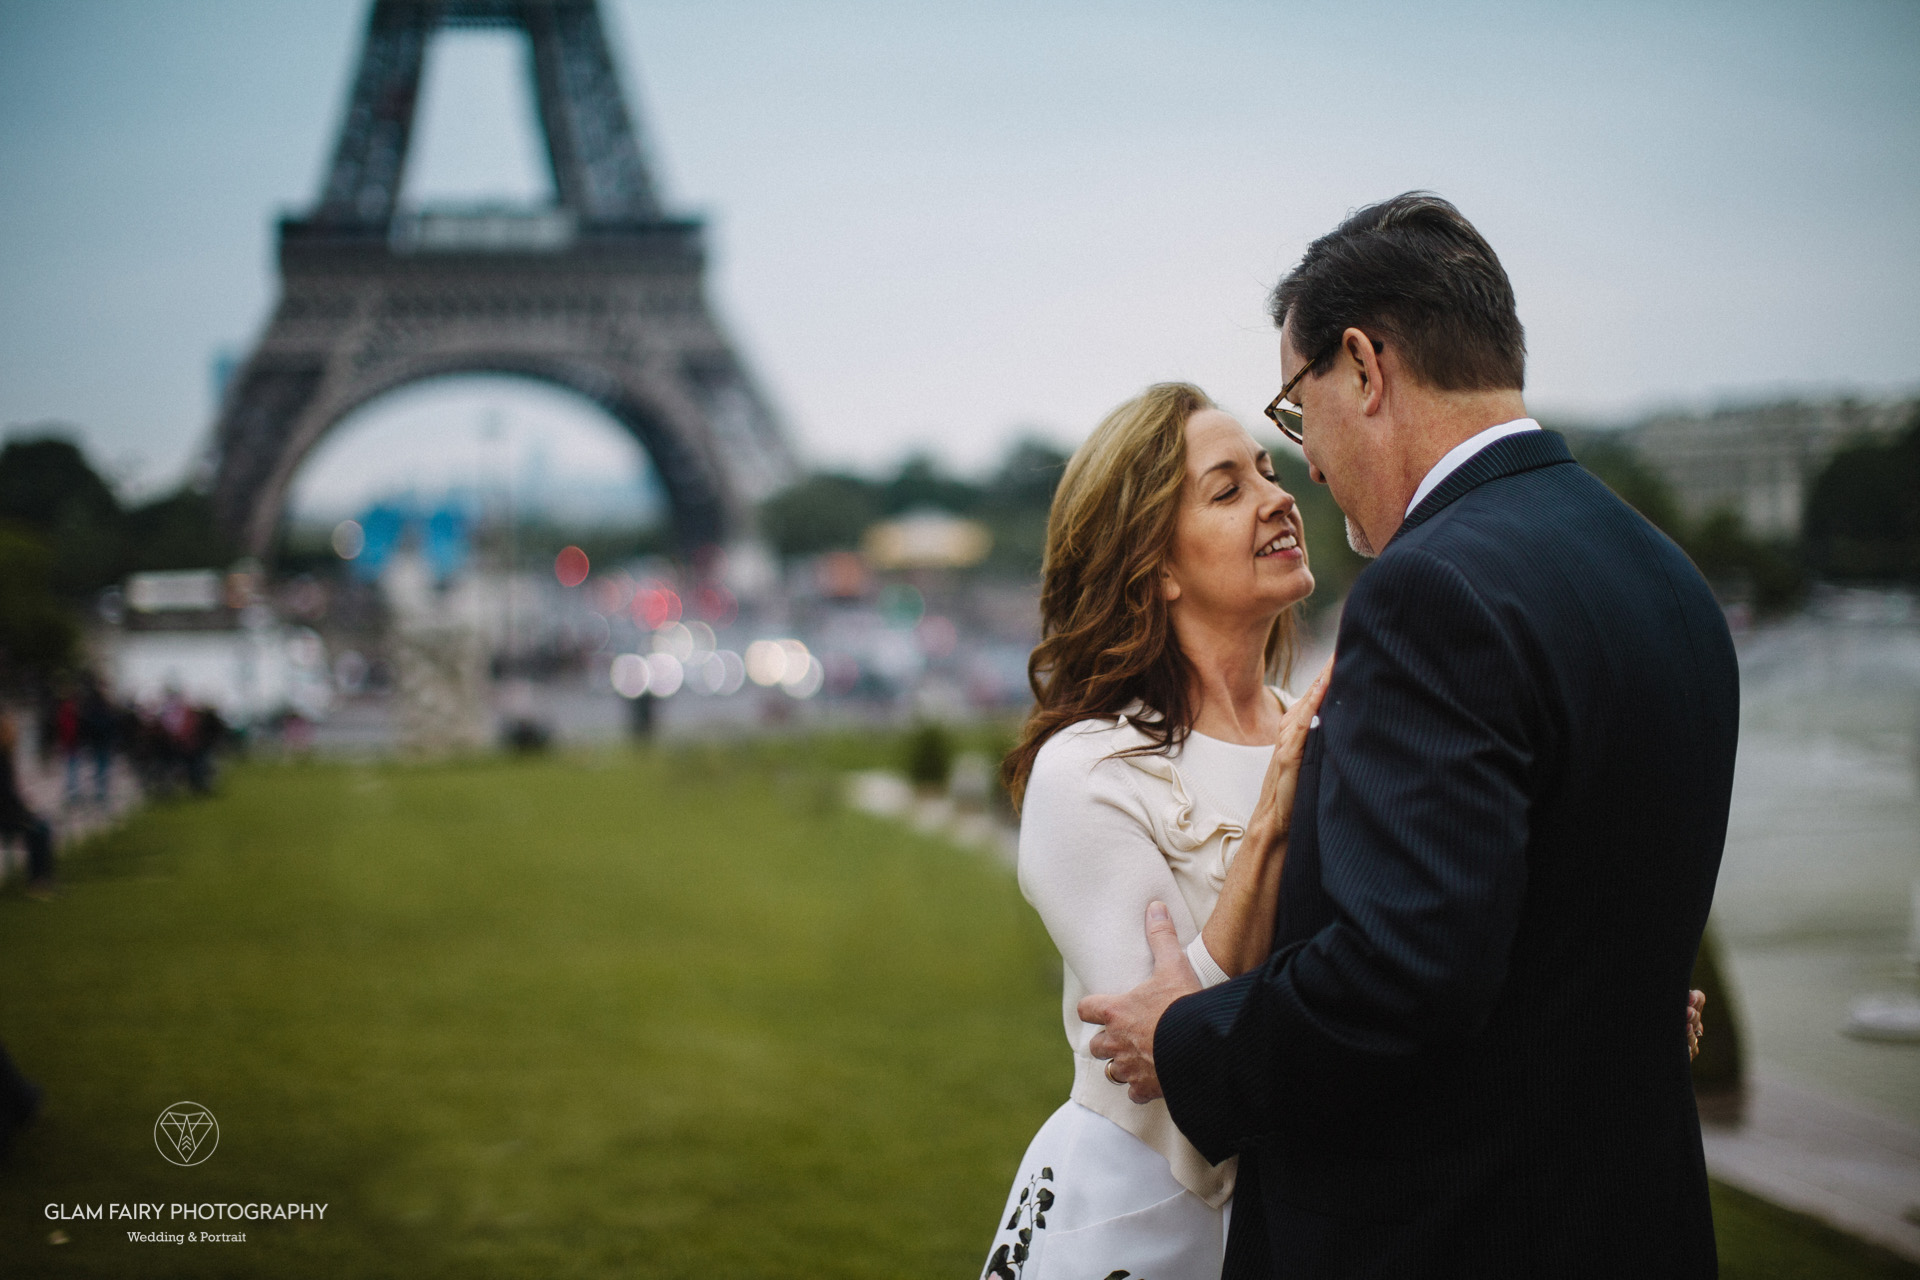 GlamFairyPhotography-boudoirphotography-lovesession-a-la-tour-eiffel-jackie-chris